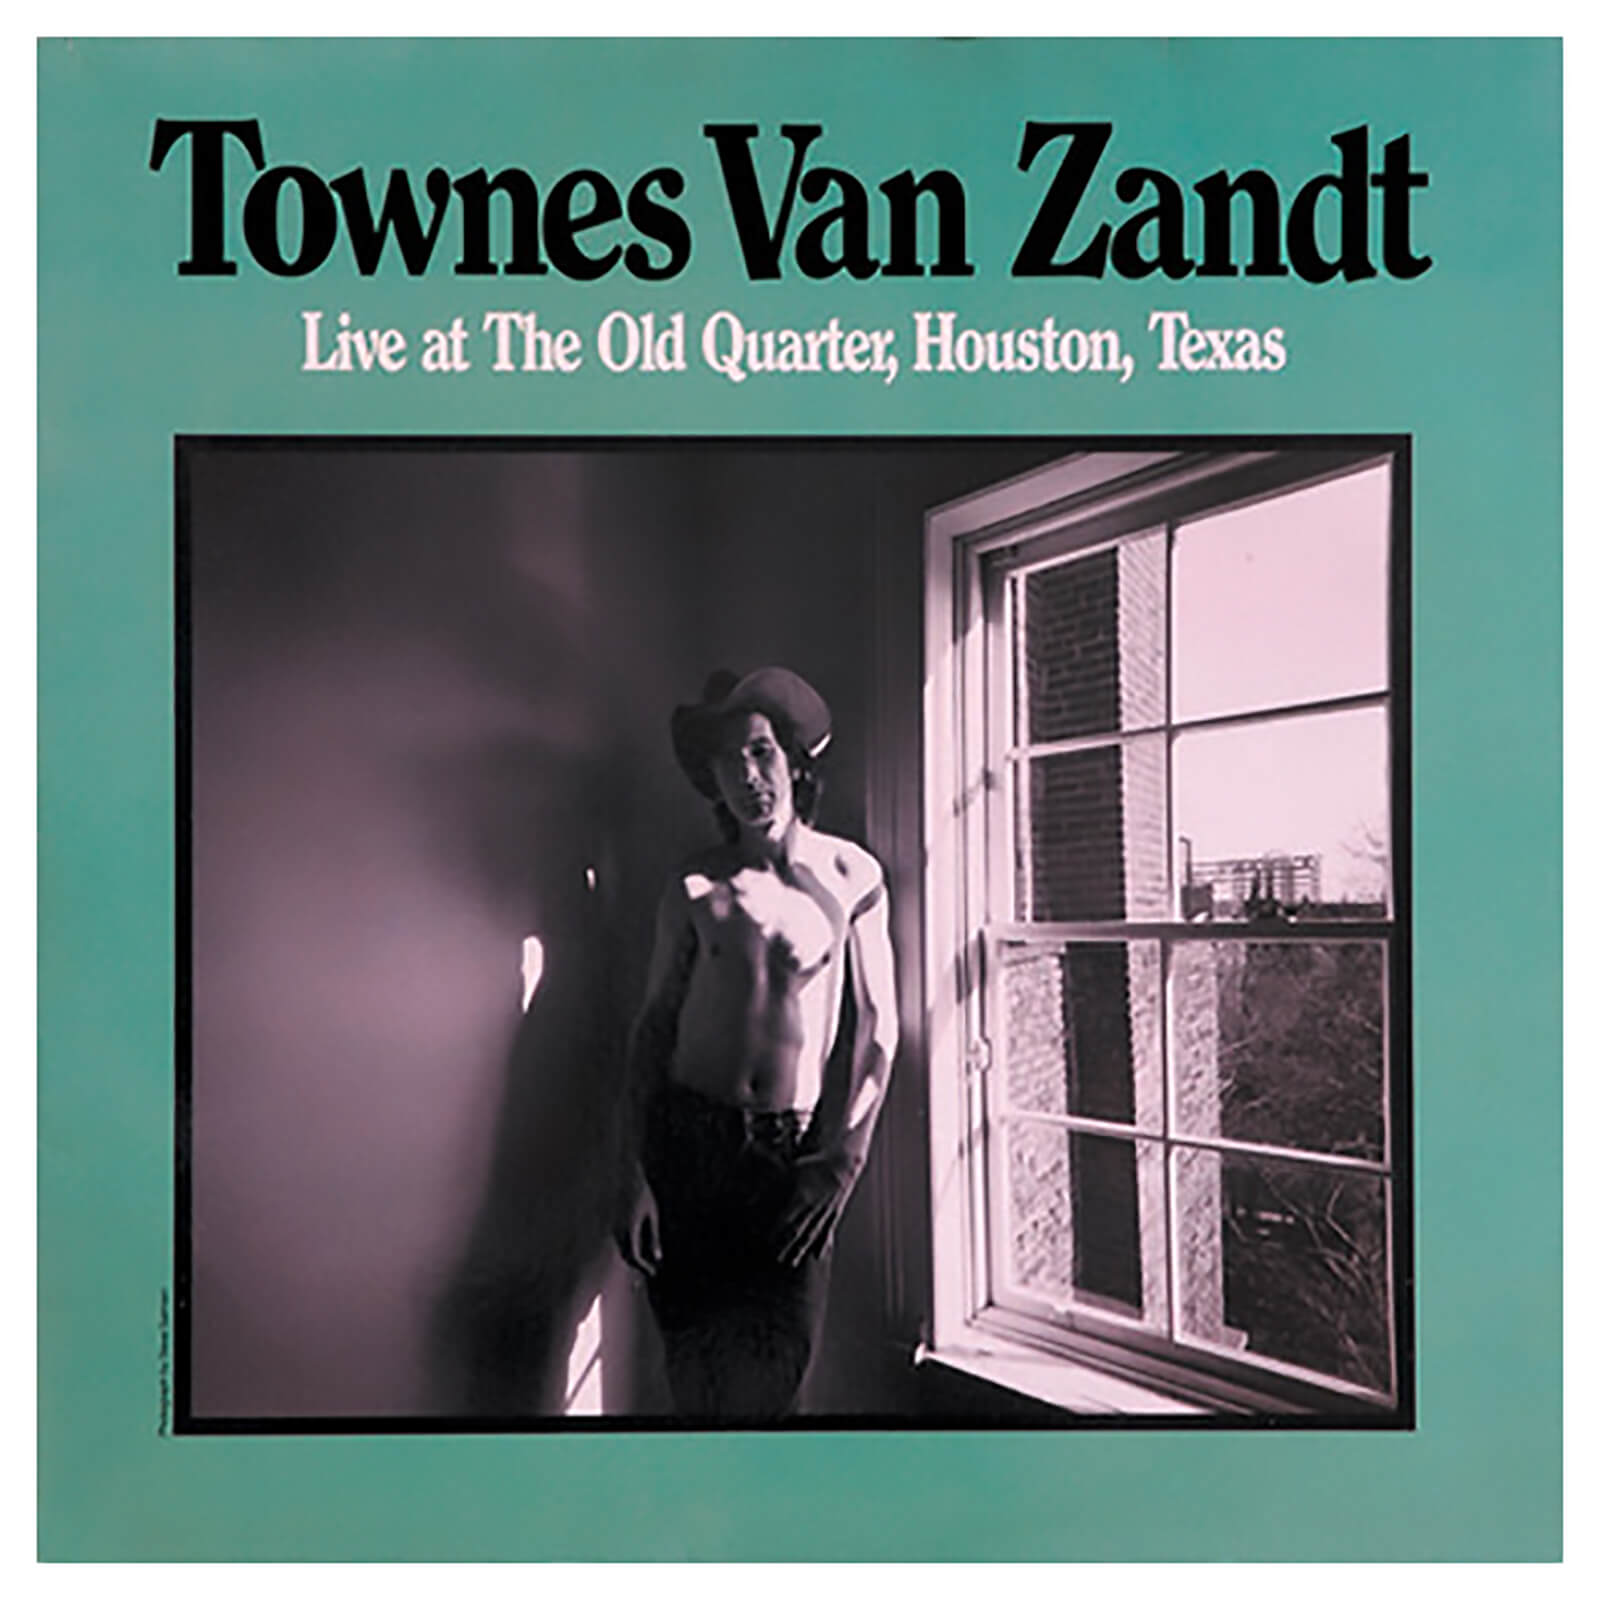 Townes Van Zandt - Live At The Old Quarter - Vinyl